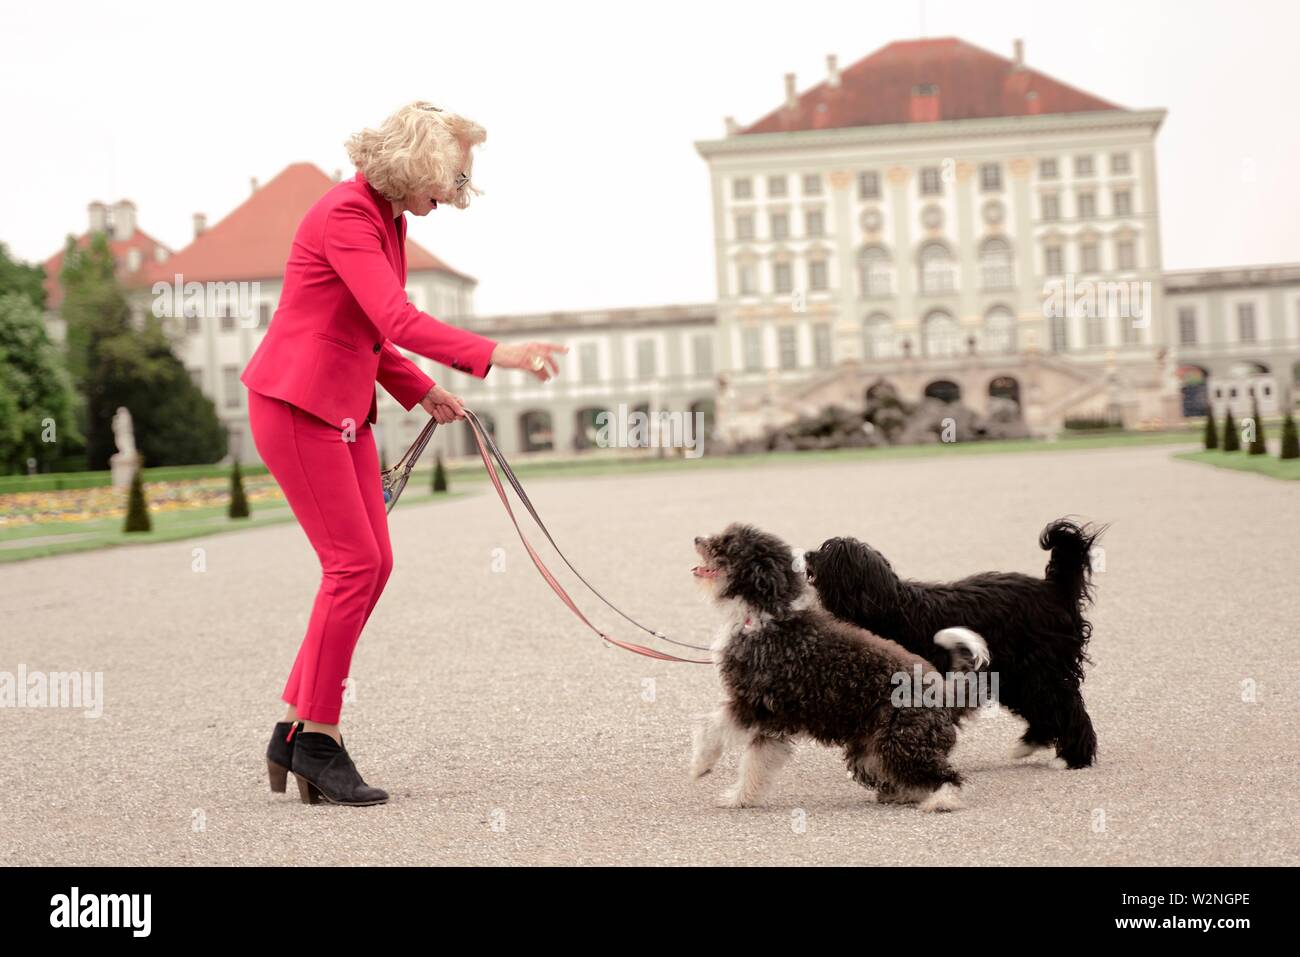 senior woman (67 years old) with two dogs on leash in park at touristic sight Nymphenburg palace, in Munich, Germany. - Stock Image